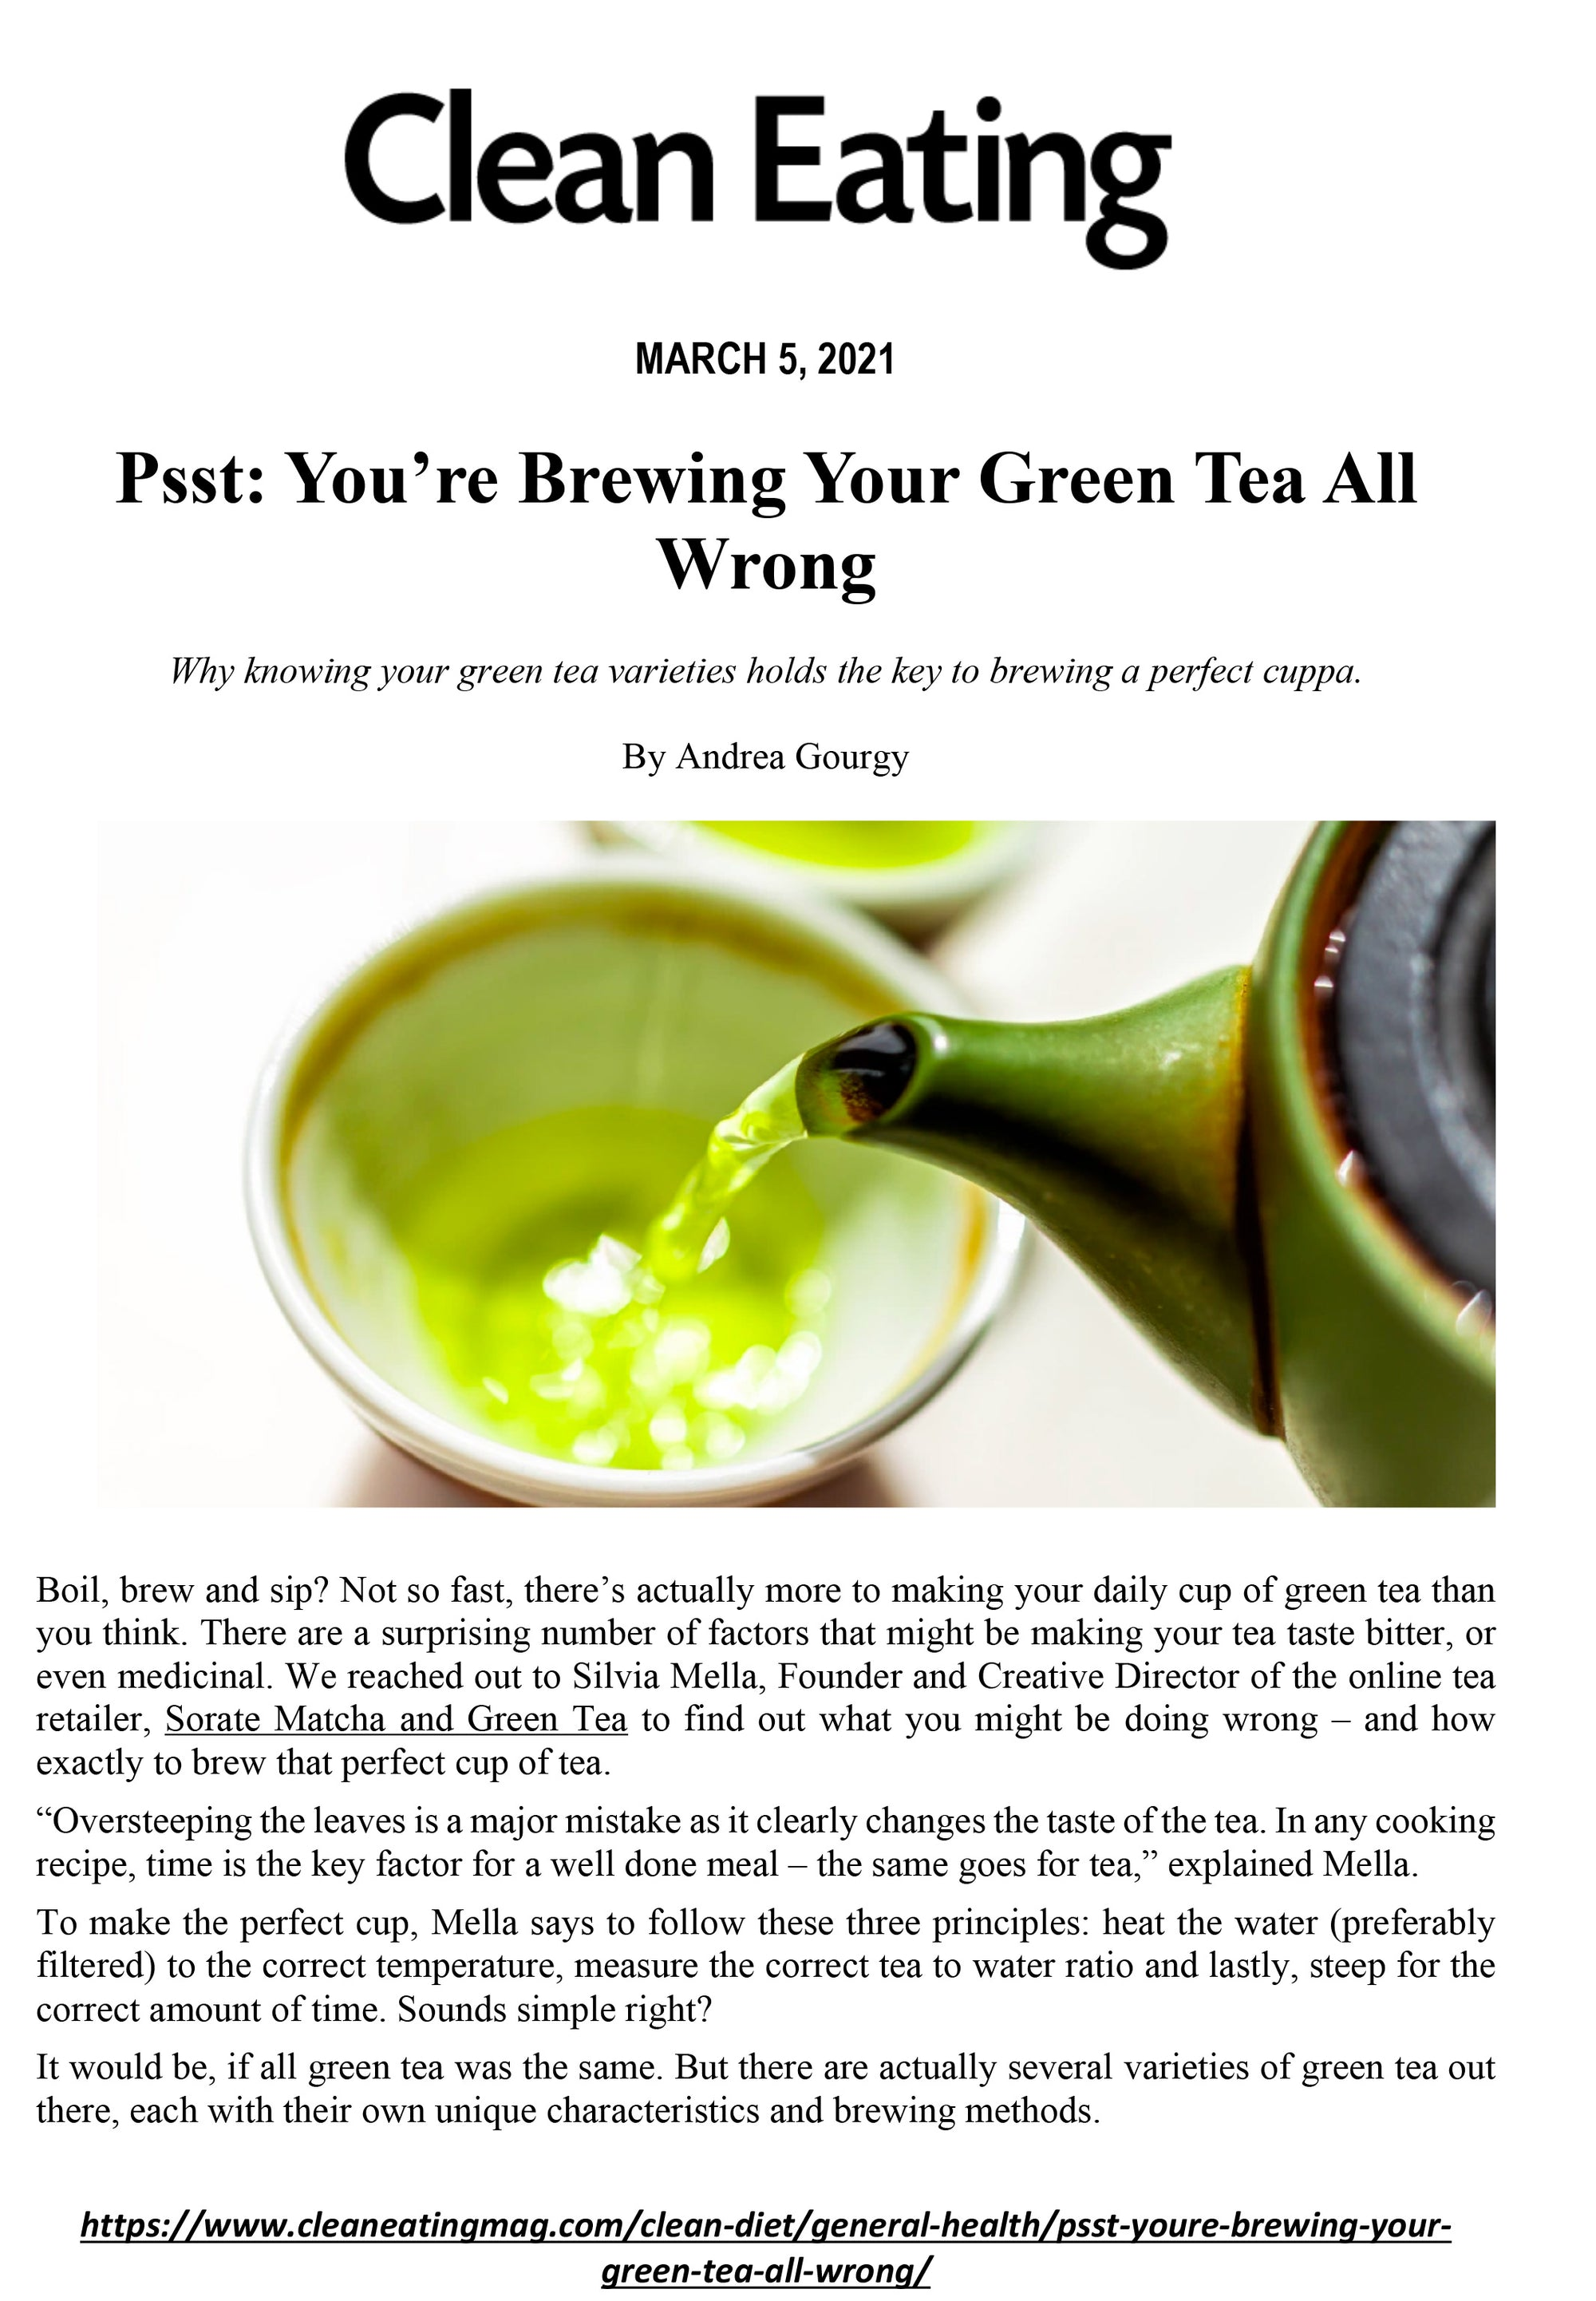 Sorate Clean Eating Magazine Matcha and green tea brew